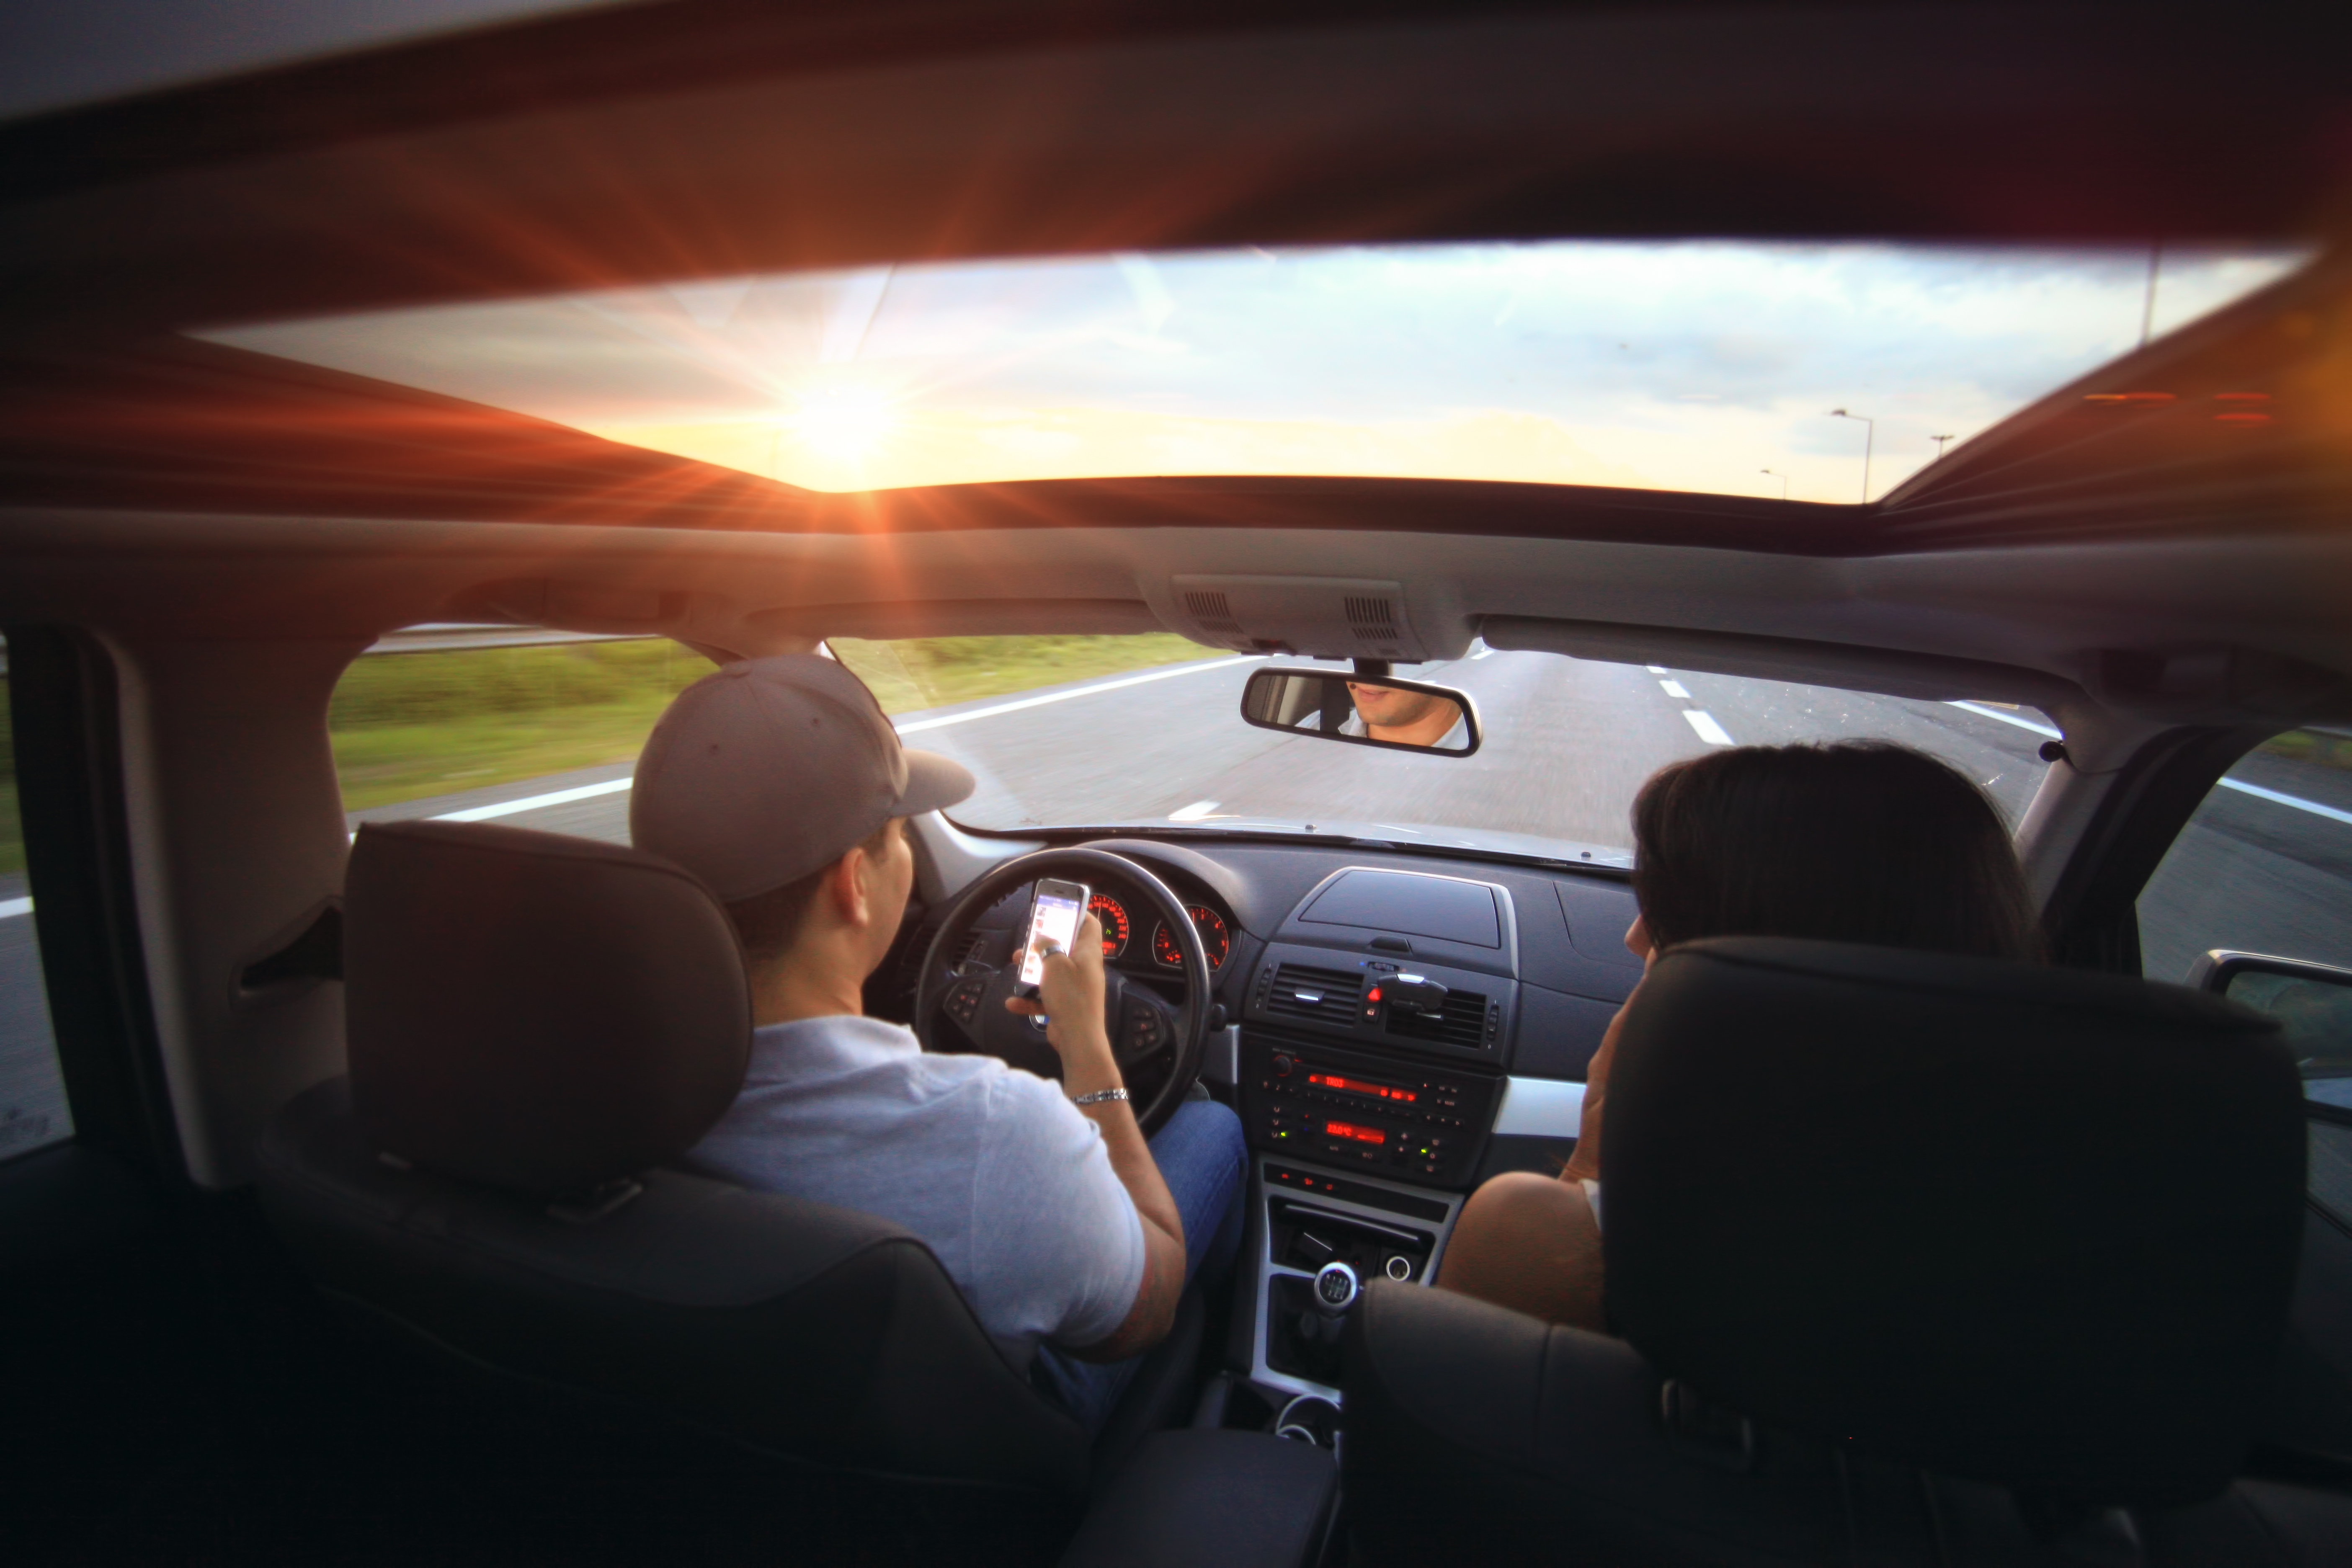 Texting While Driving Tampa Bay Car Accidents